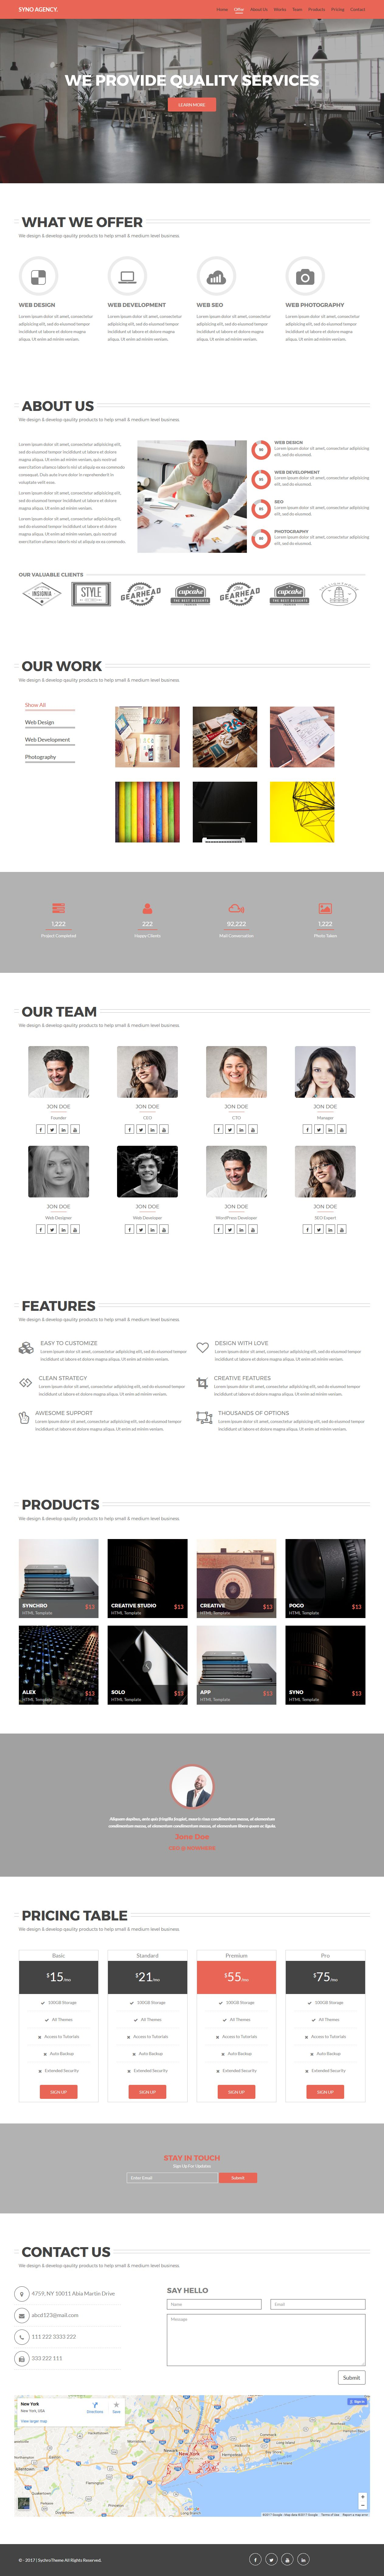 Syno Agency - One Page HTML5 Agency Template  Screenshot 1